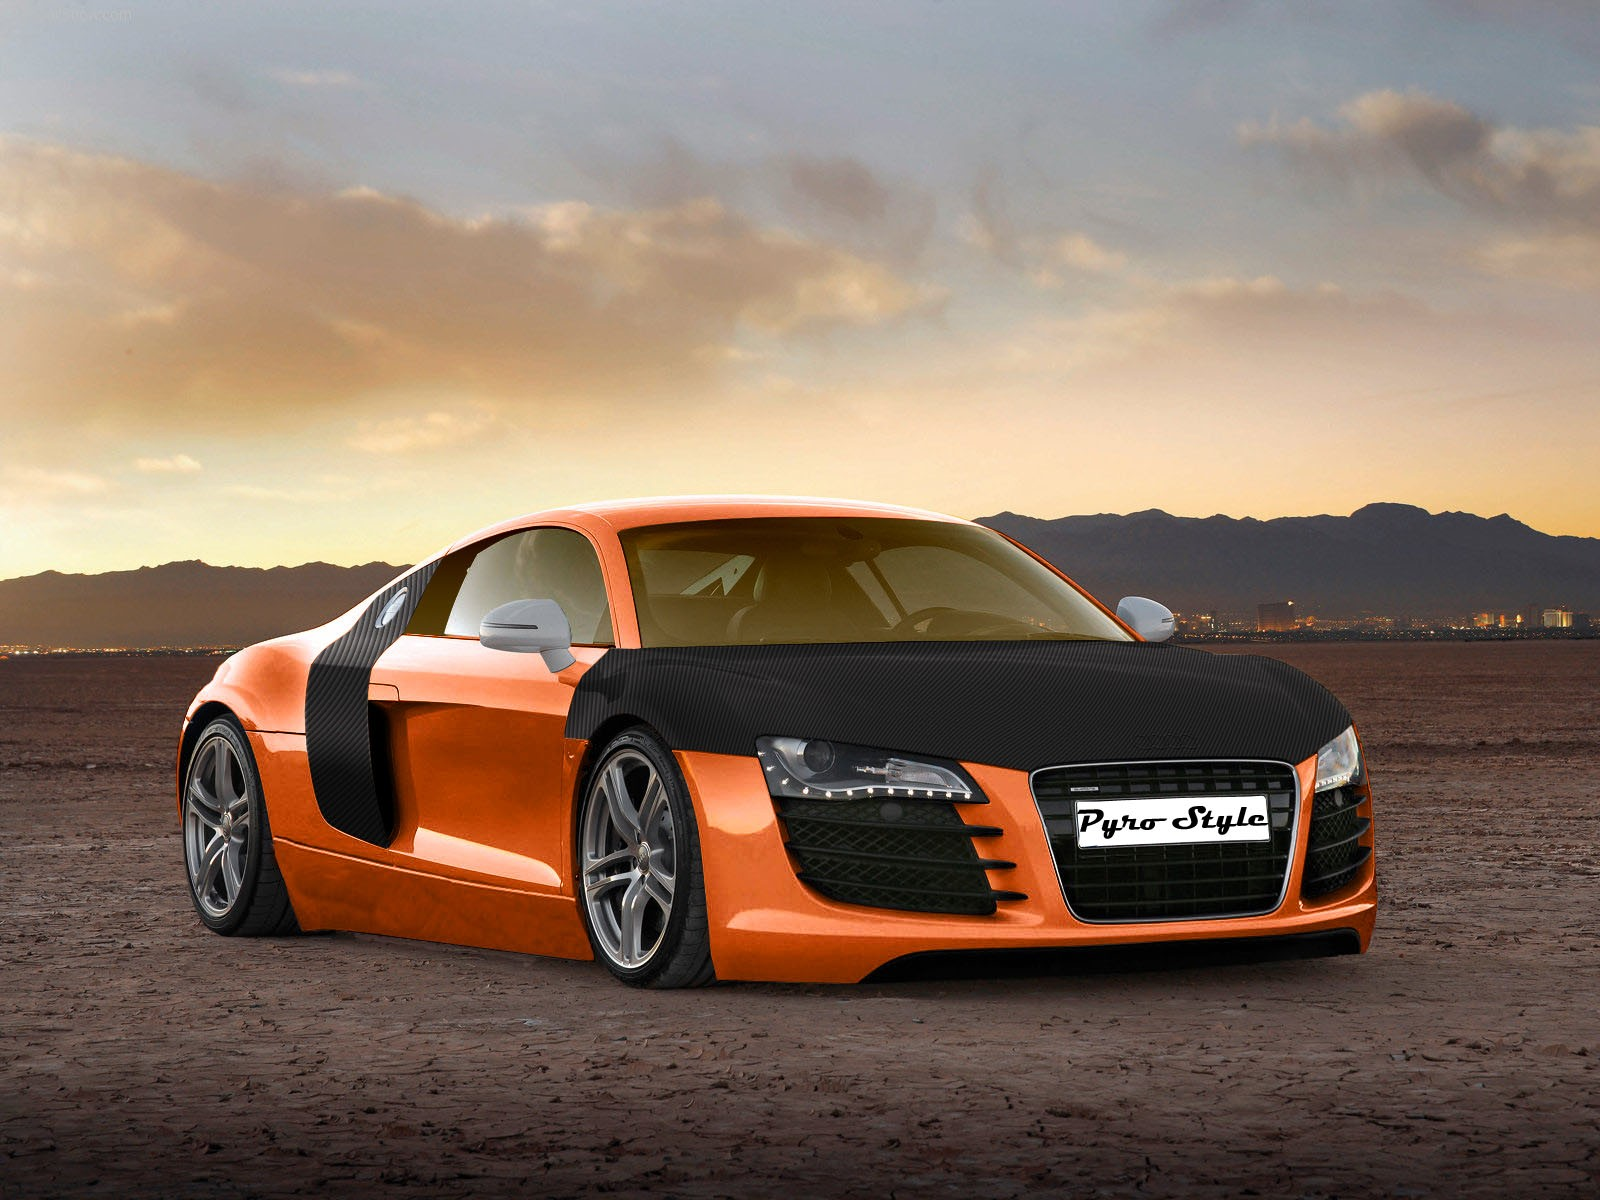 cottocnet audi r8 070 Audi r8 wallpaper download